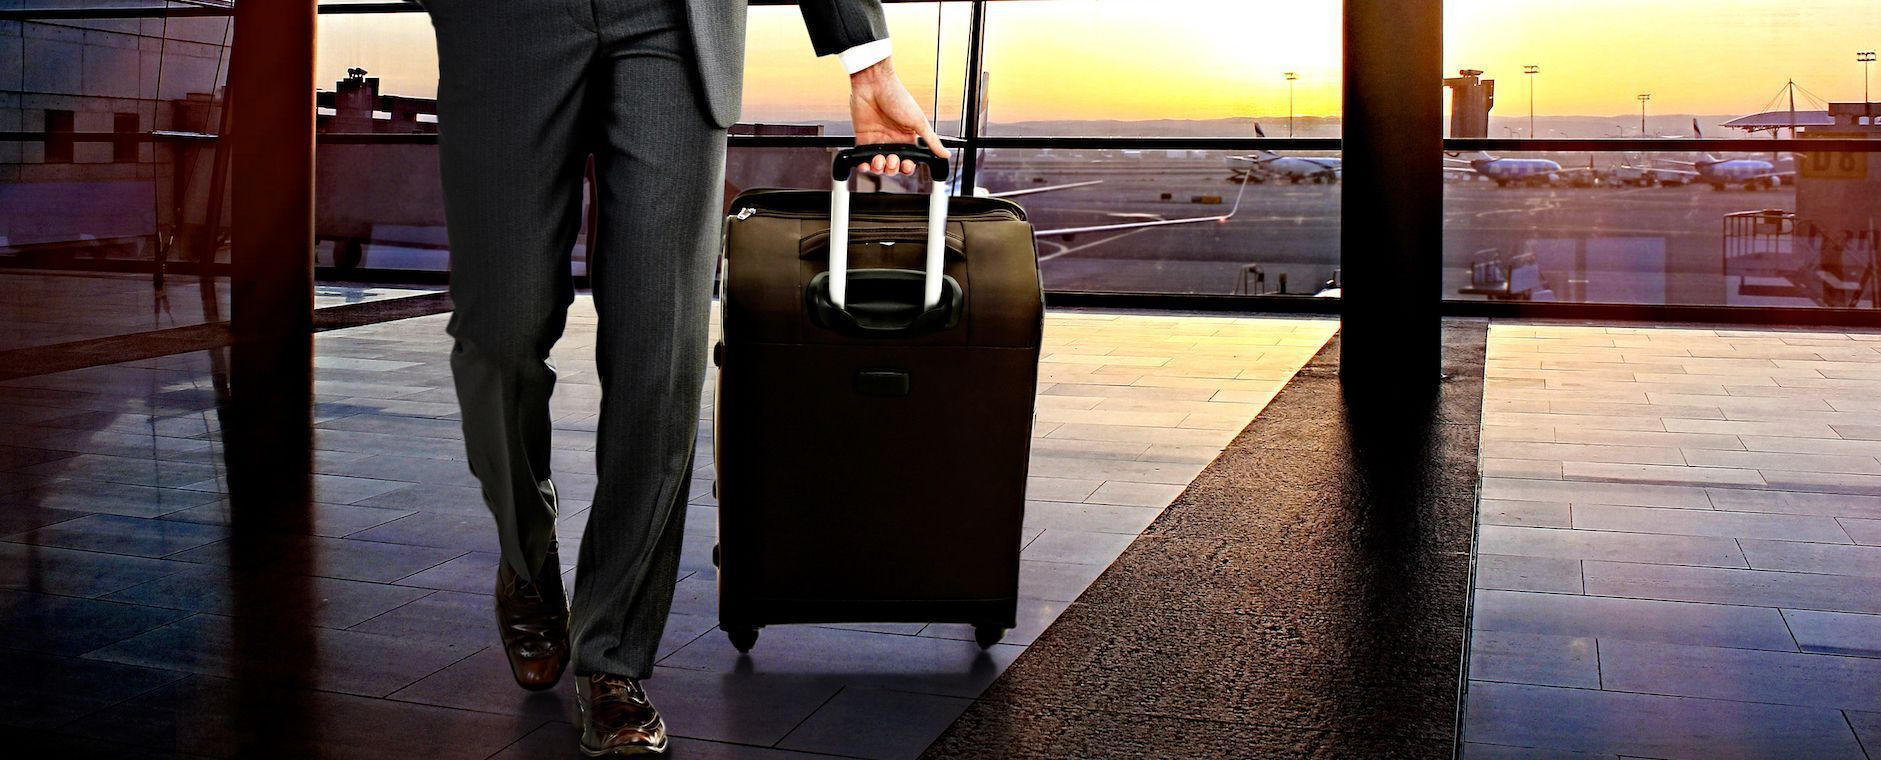 bigstock-Business-man-with-suitcase-in-116977547.jpg